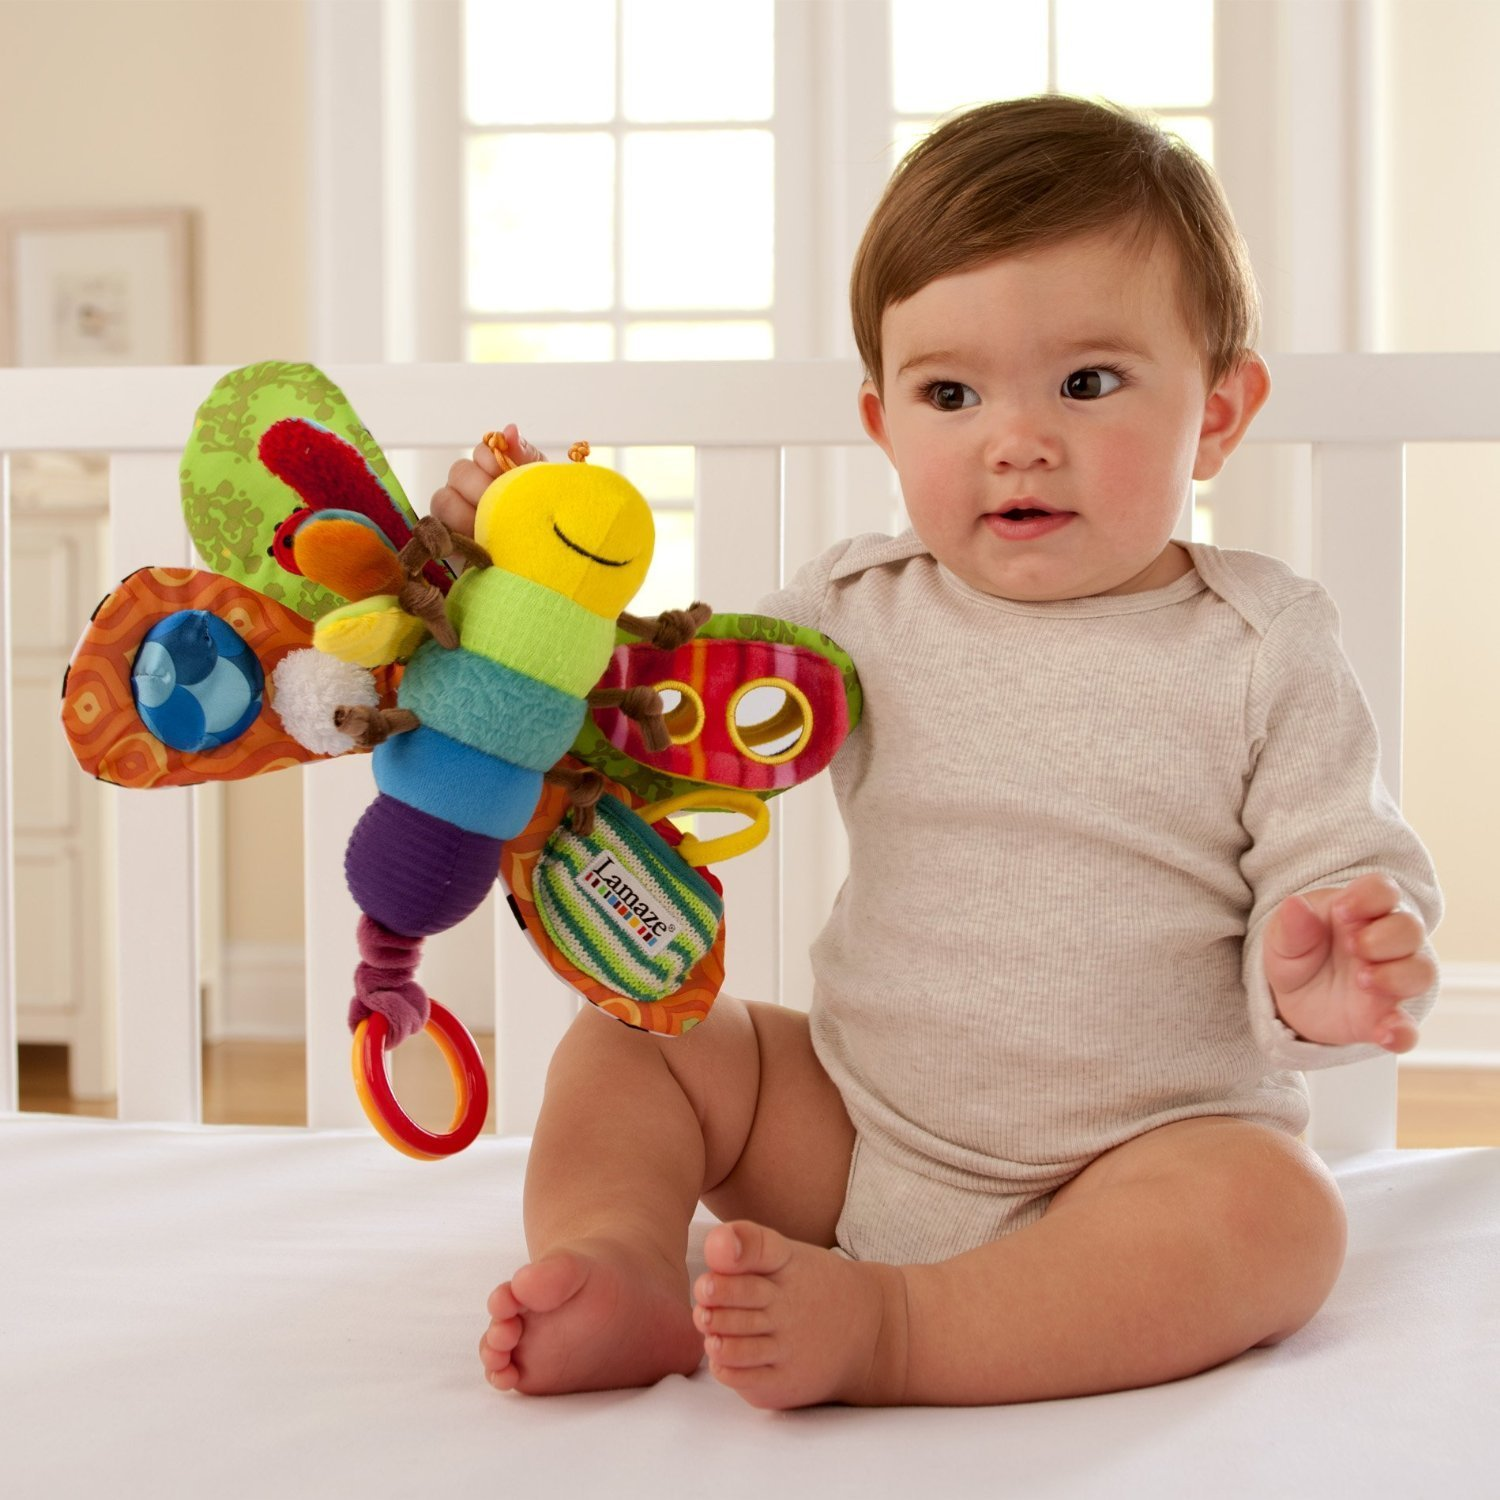 Best Developmental Toys for Baby